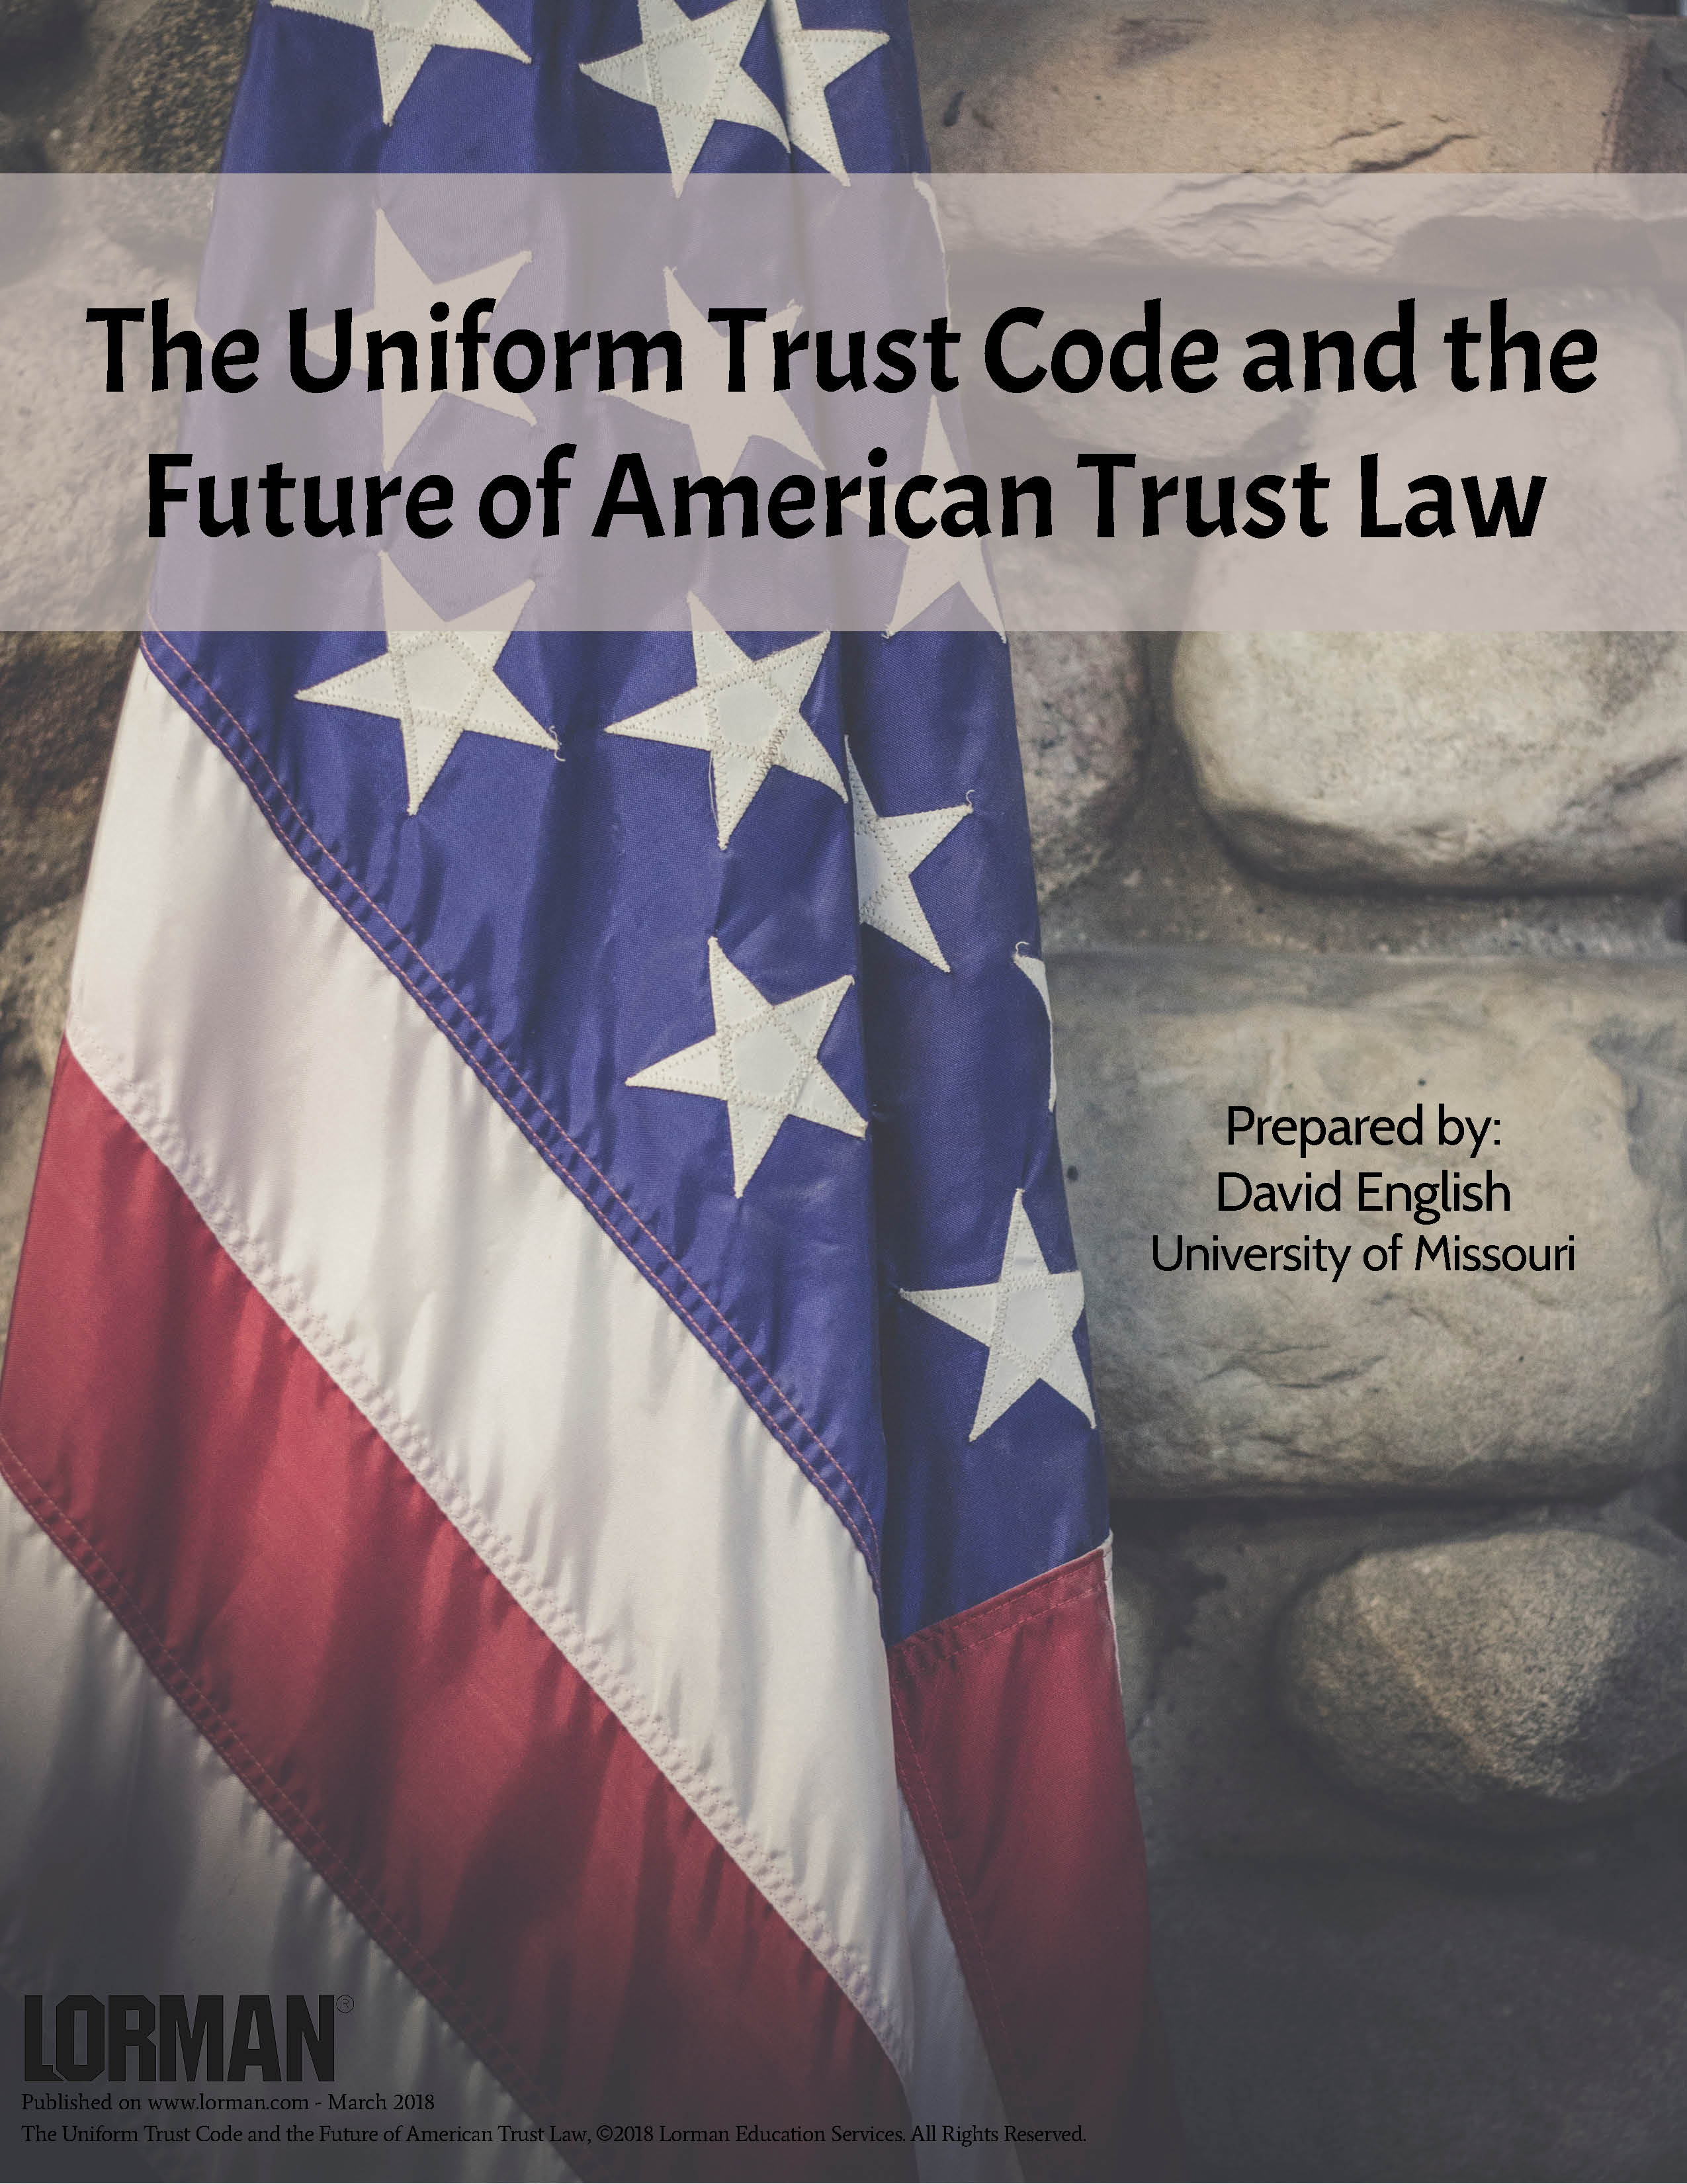 The Uniform Trust Code and the Future of American Trust Law